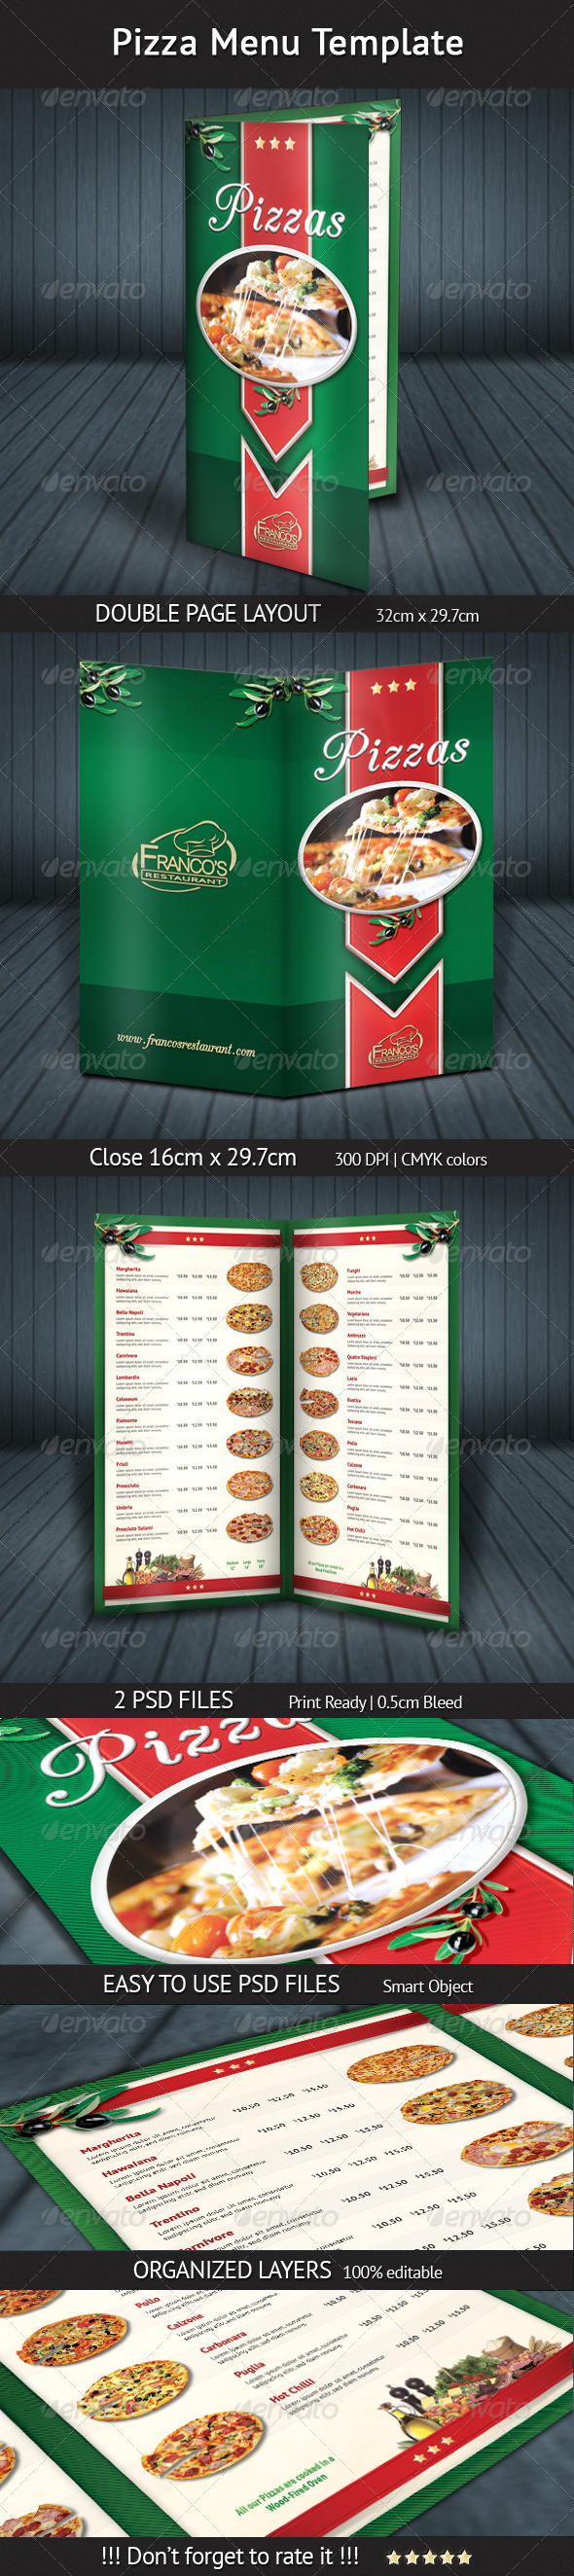 Pizza Menu Template - Food Menus Print Templates